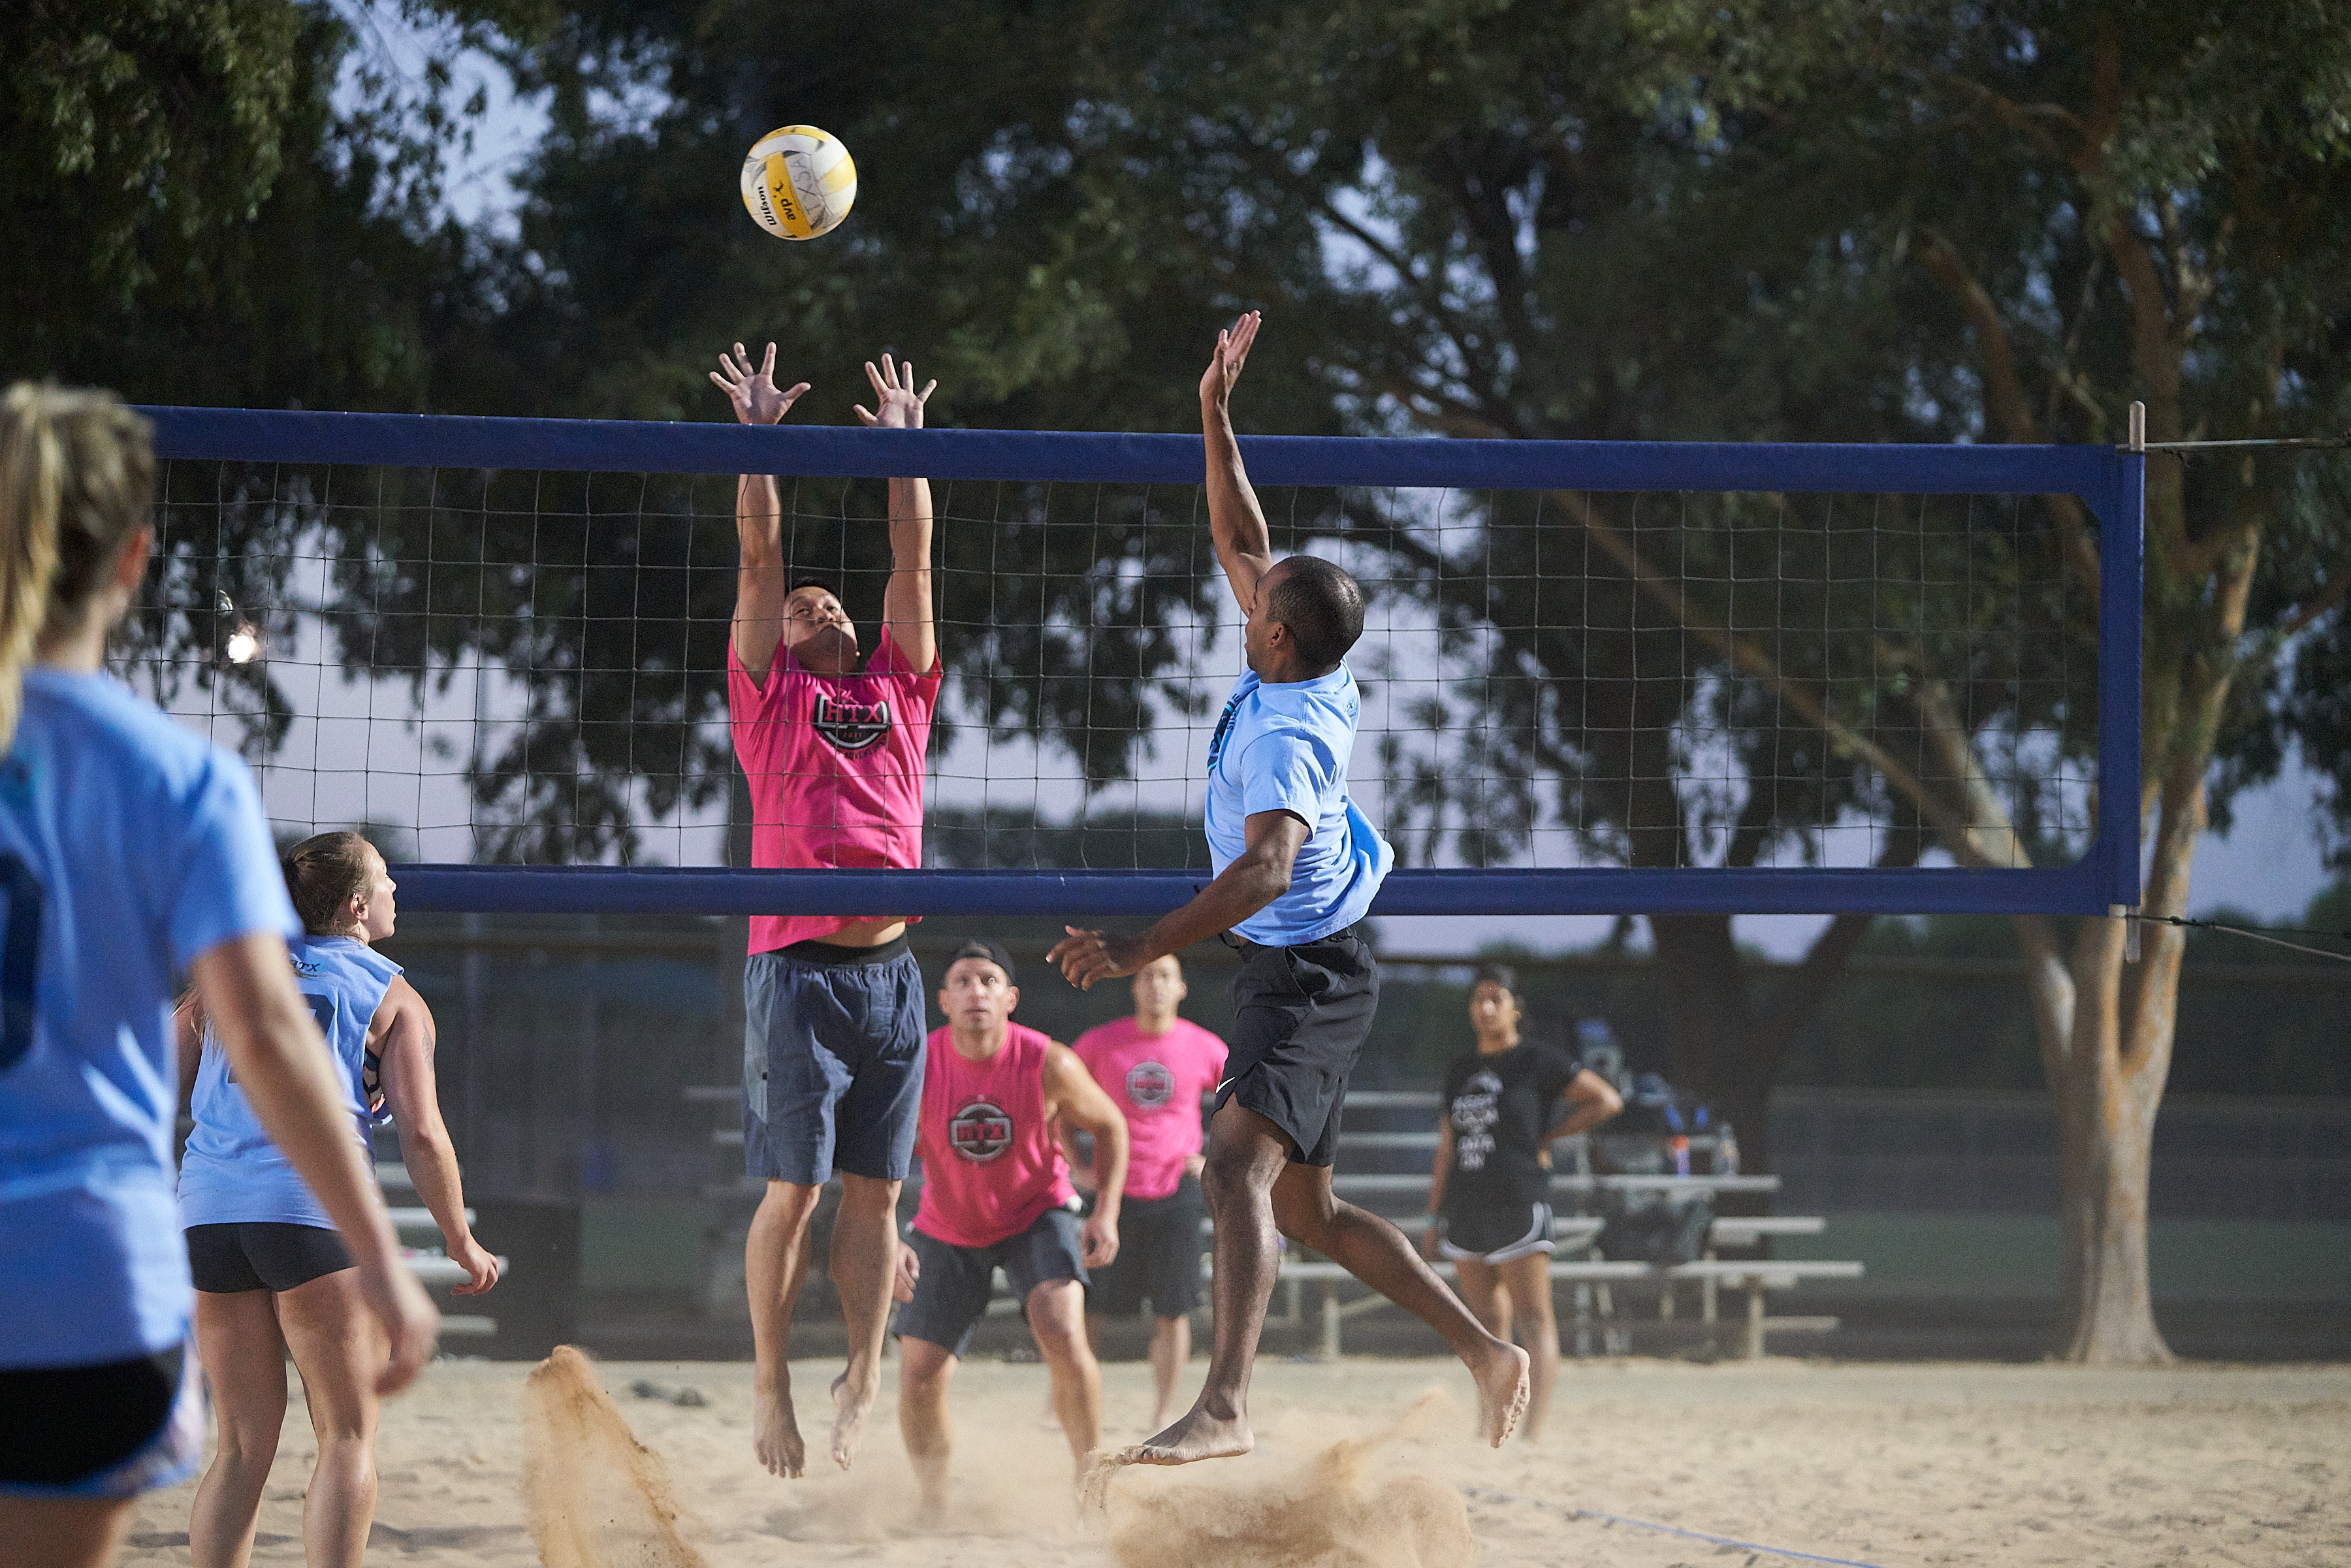 11 14 Bring Your Own 4s Sand Volleyball Tournament Byo4s Atx Sports Adventures